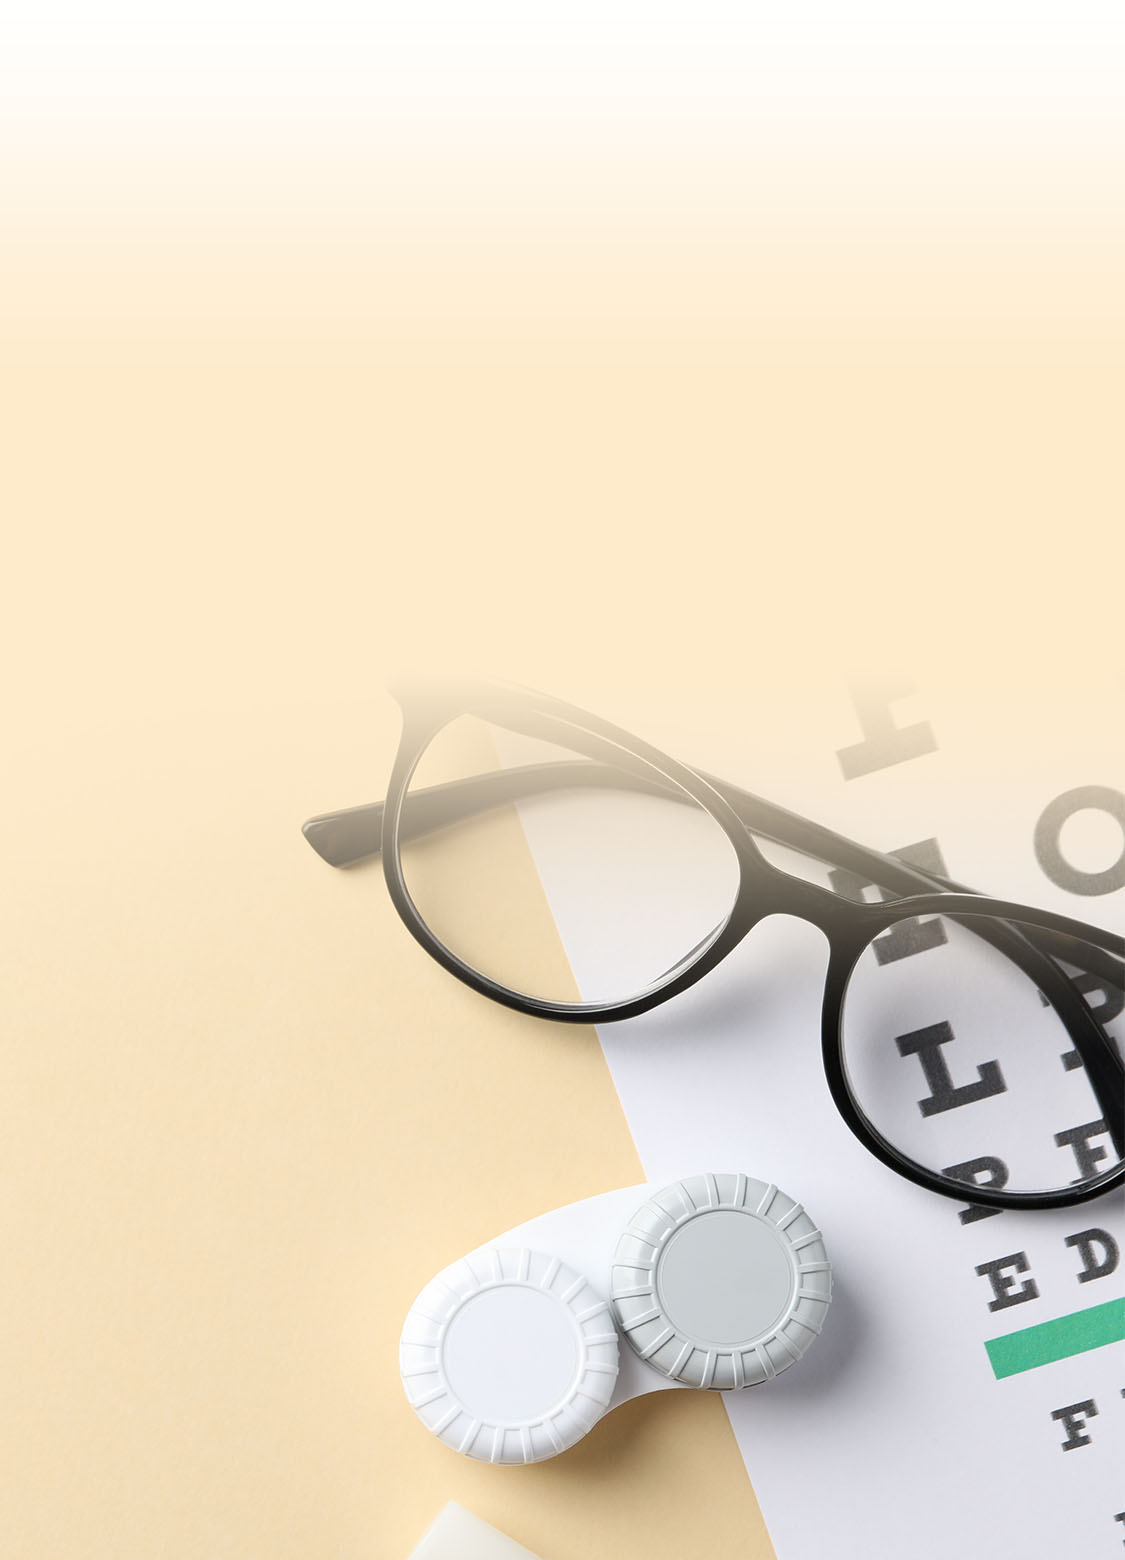 eyeglasses and contact lenses on top of an eye chart